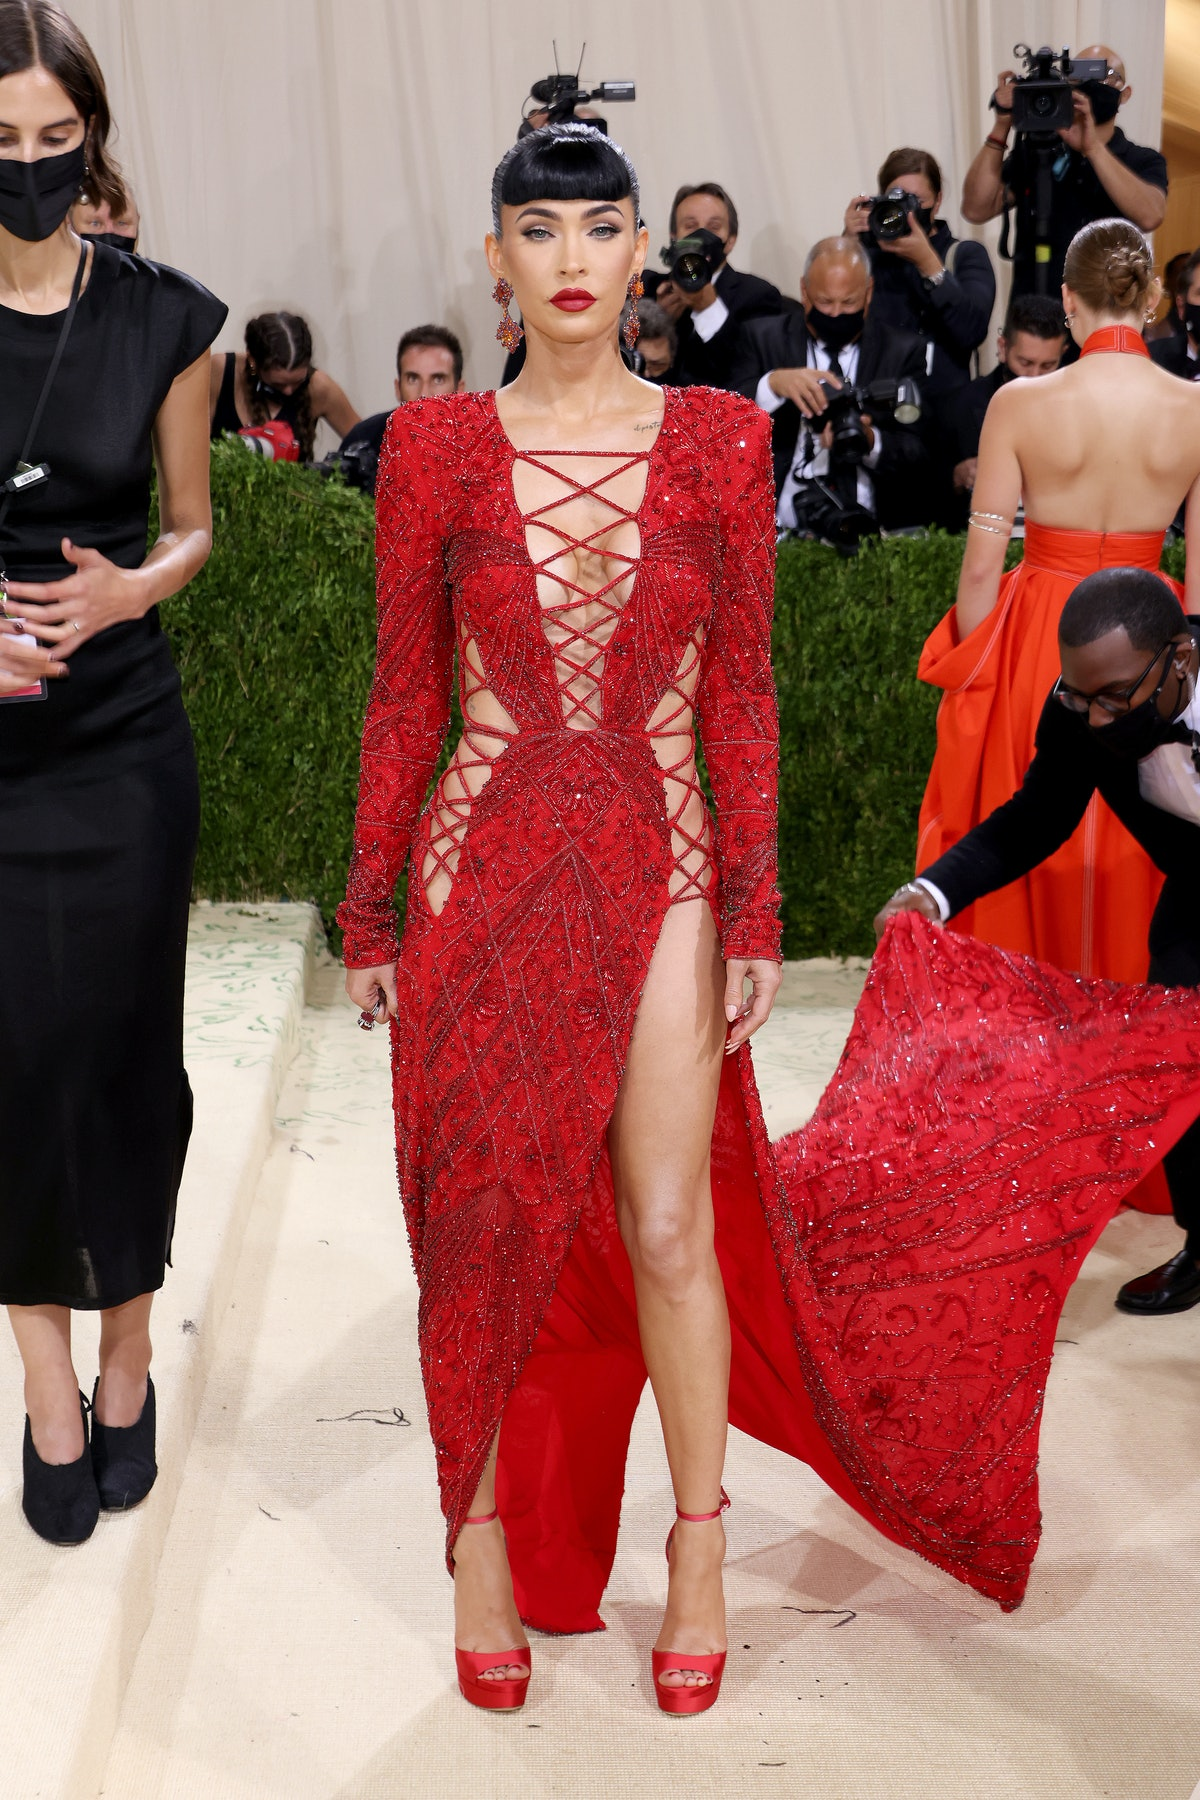 Megan Fox attends The 2021 Met Gala Celebrating In America: A Lexicon Of Fashion at Metropolitan Mus...